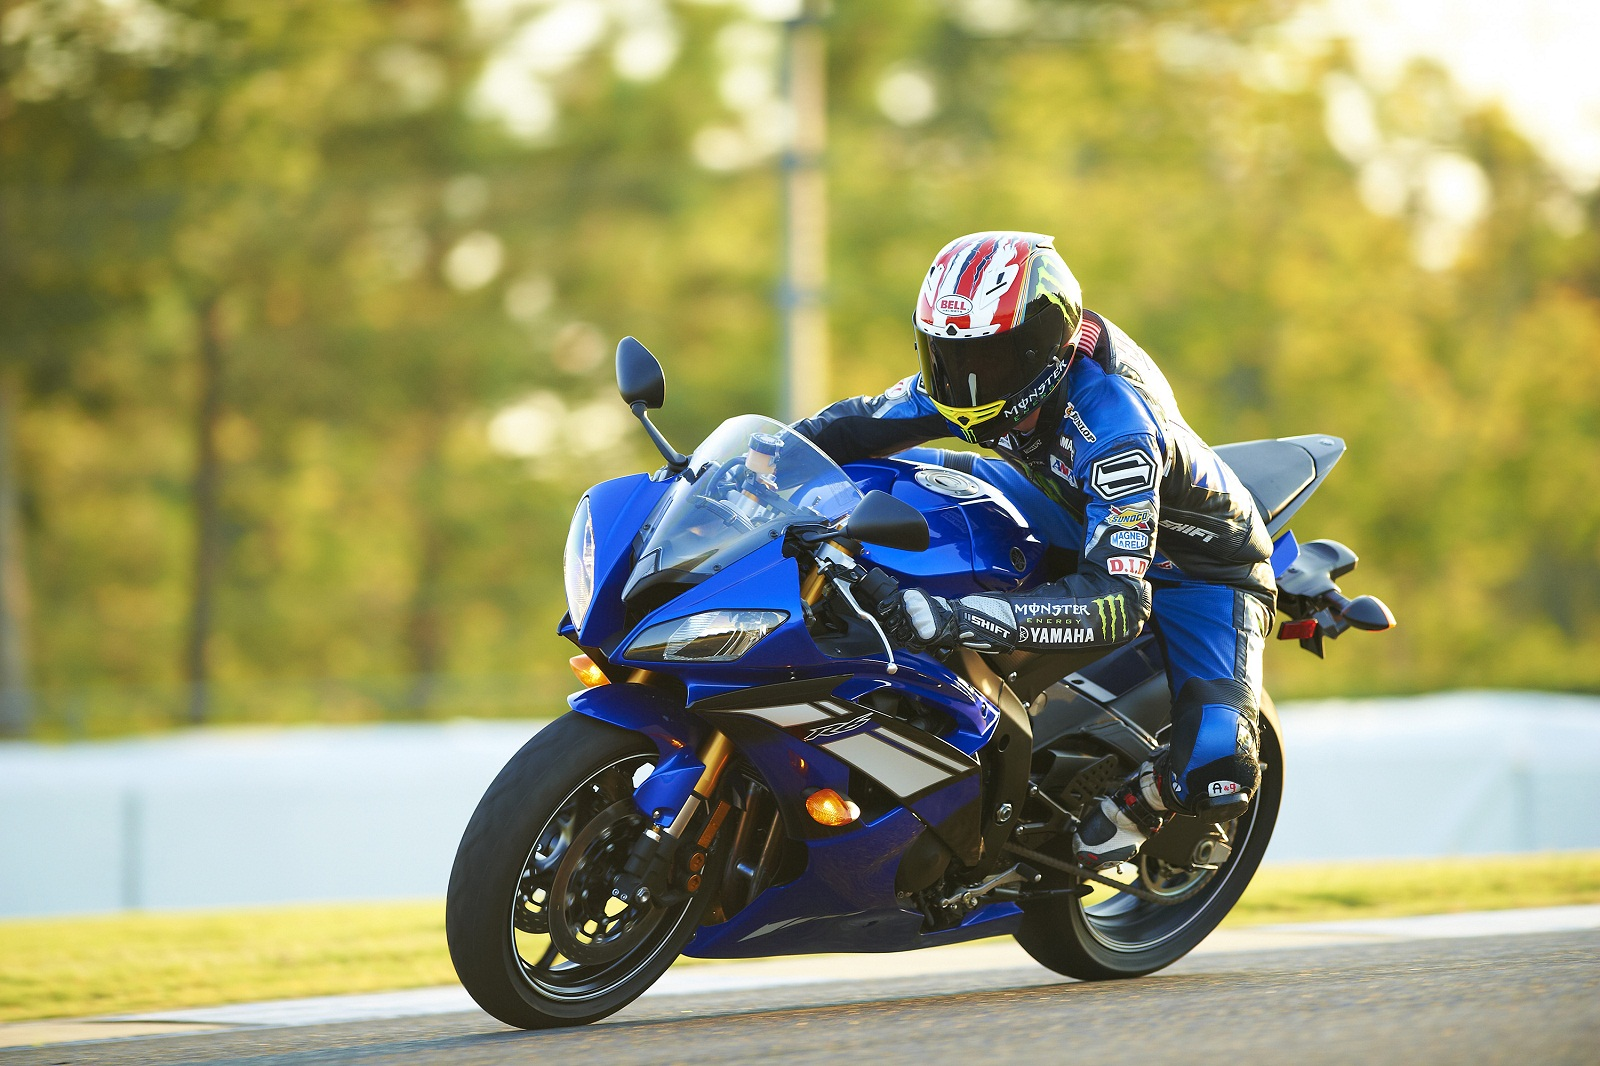 Yamaha Manufacturer With Pictures (Page 27)